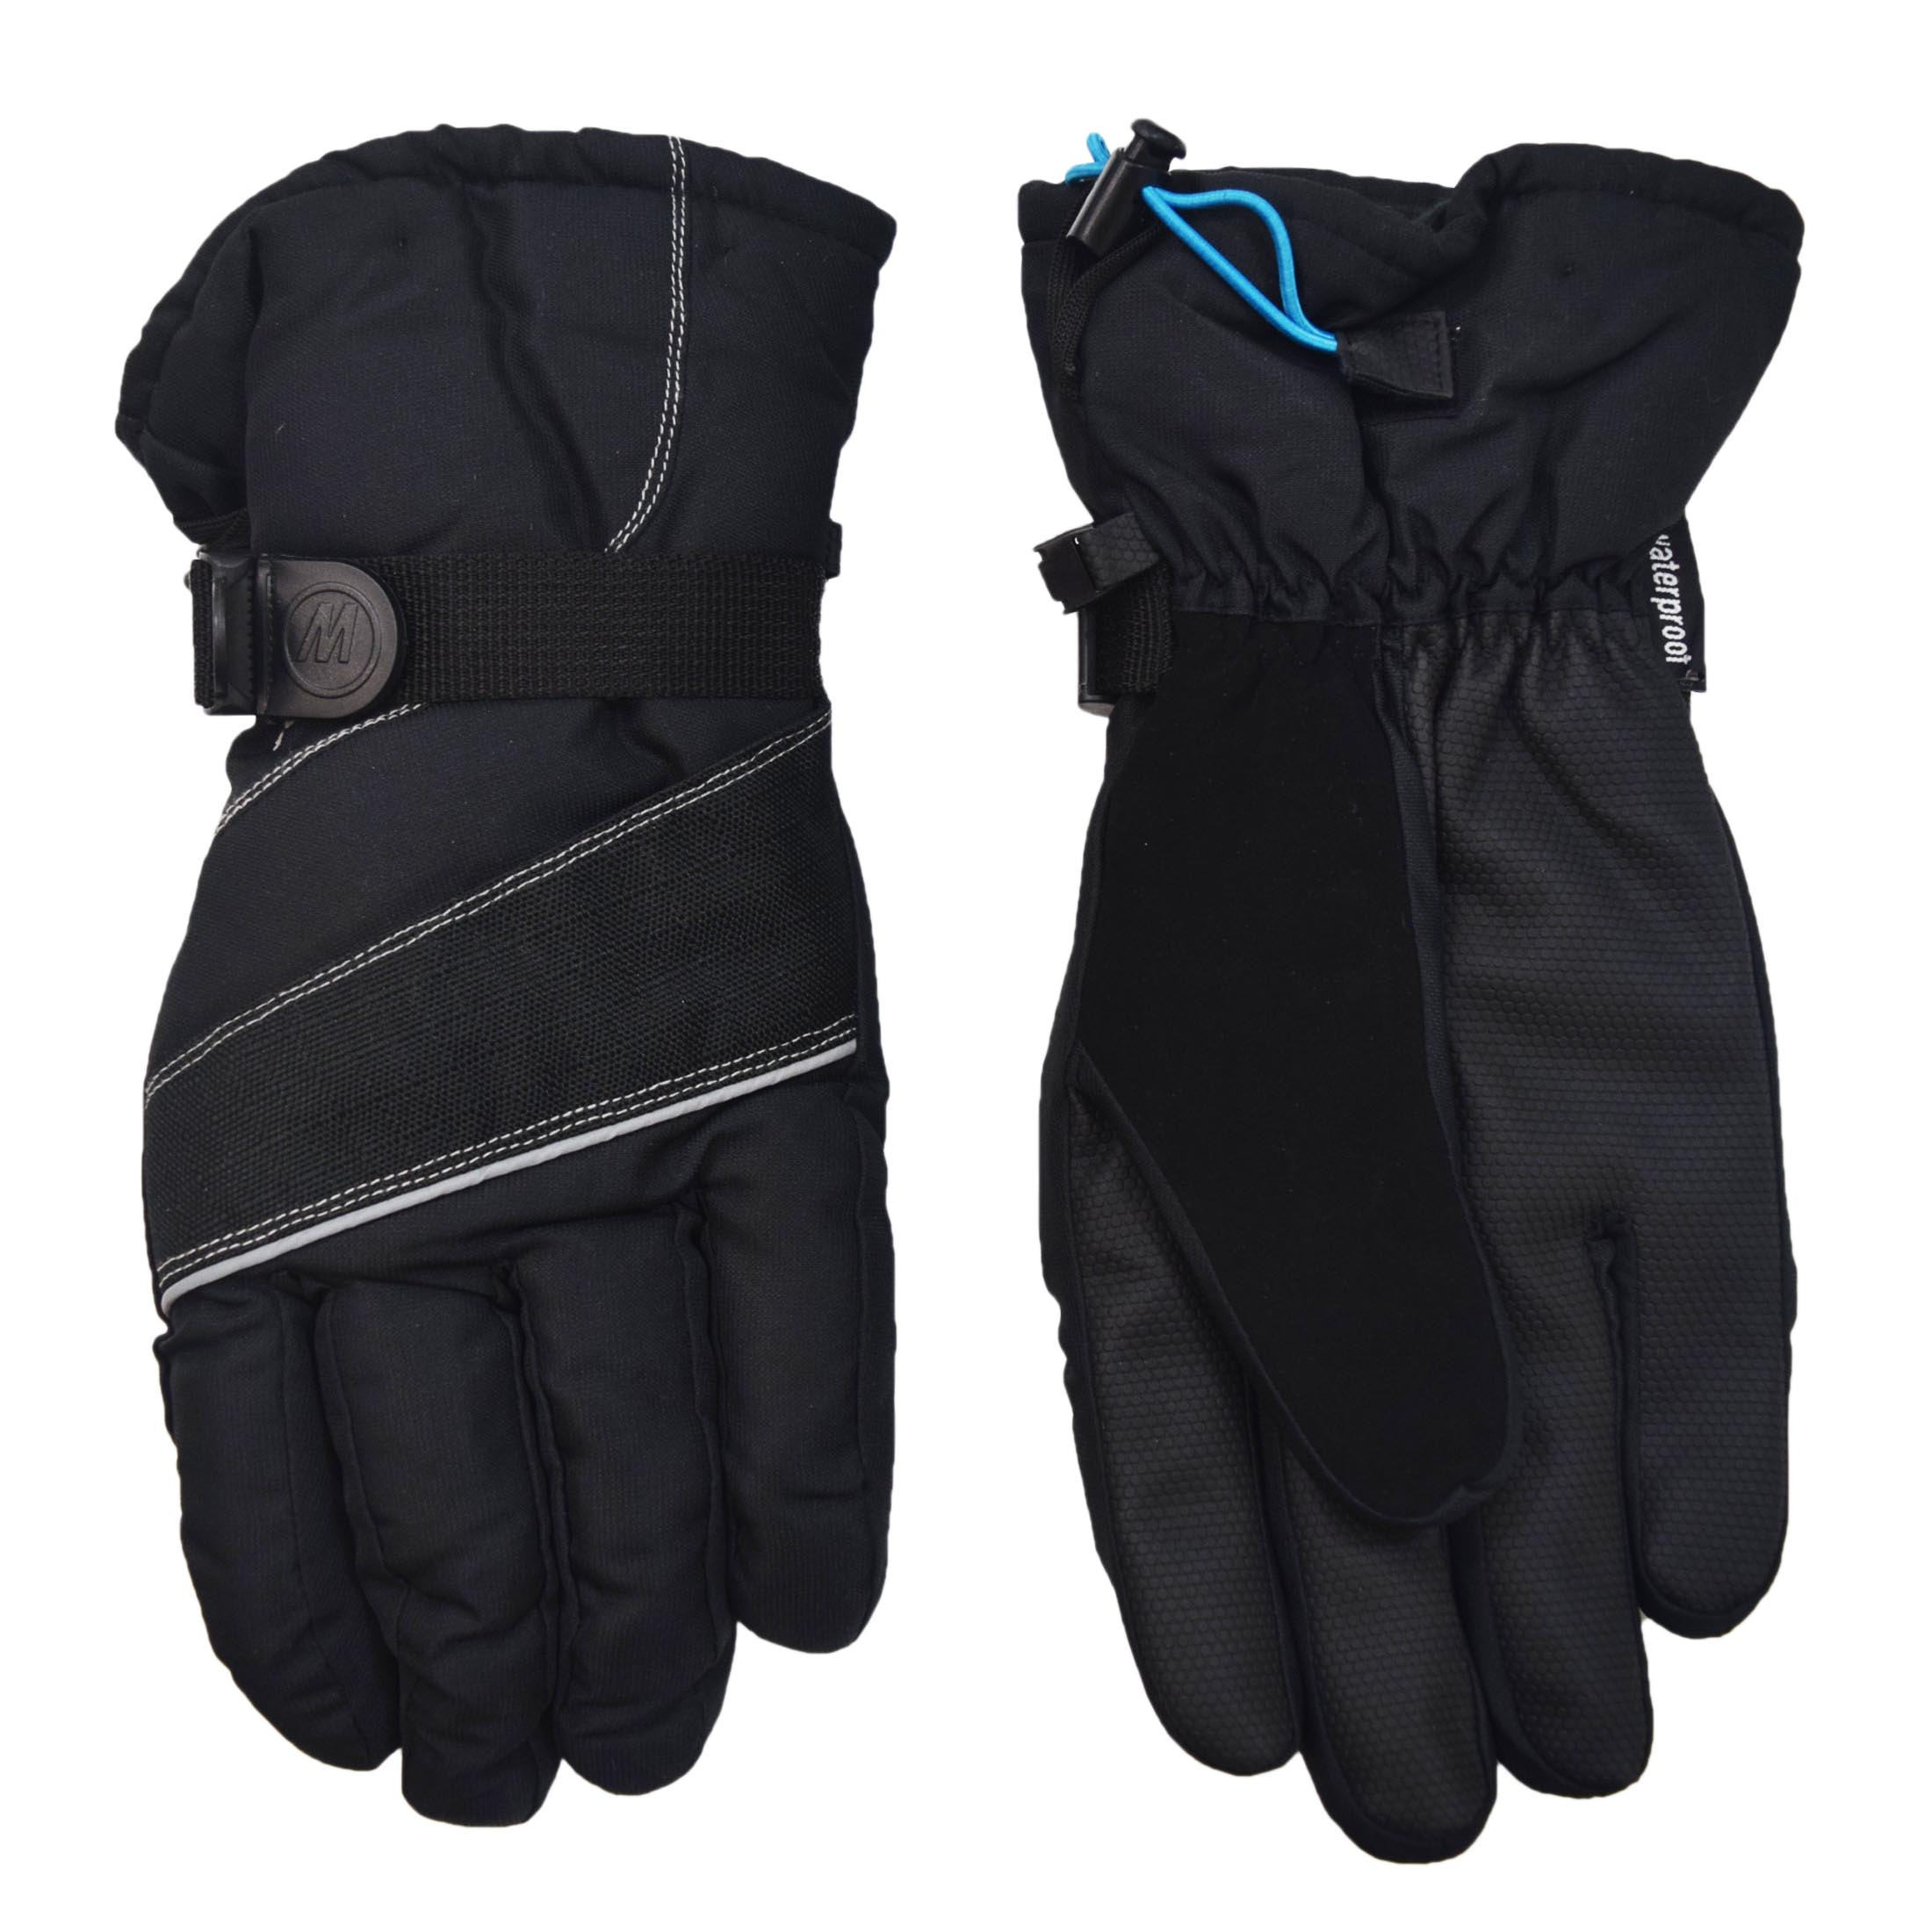 Motorcycle gloves ottawa - Mens Leather Gloves Extra Large Picture 9 Of 16